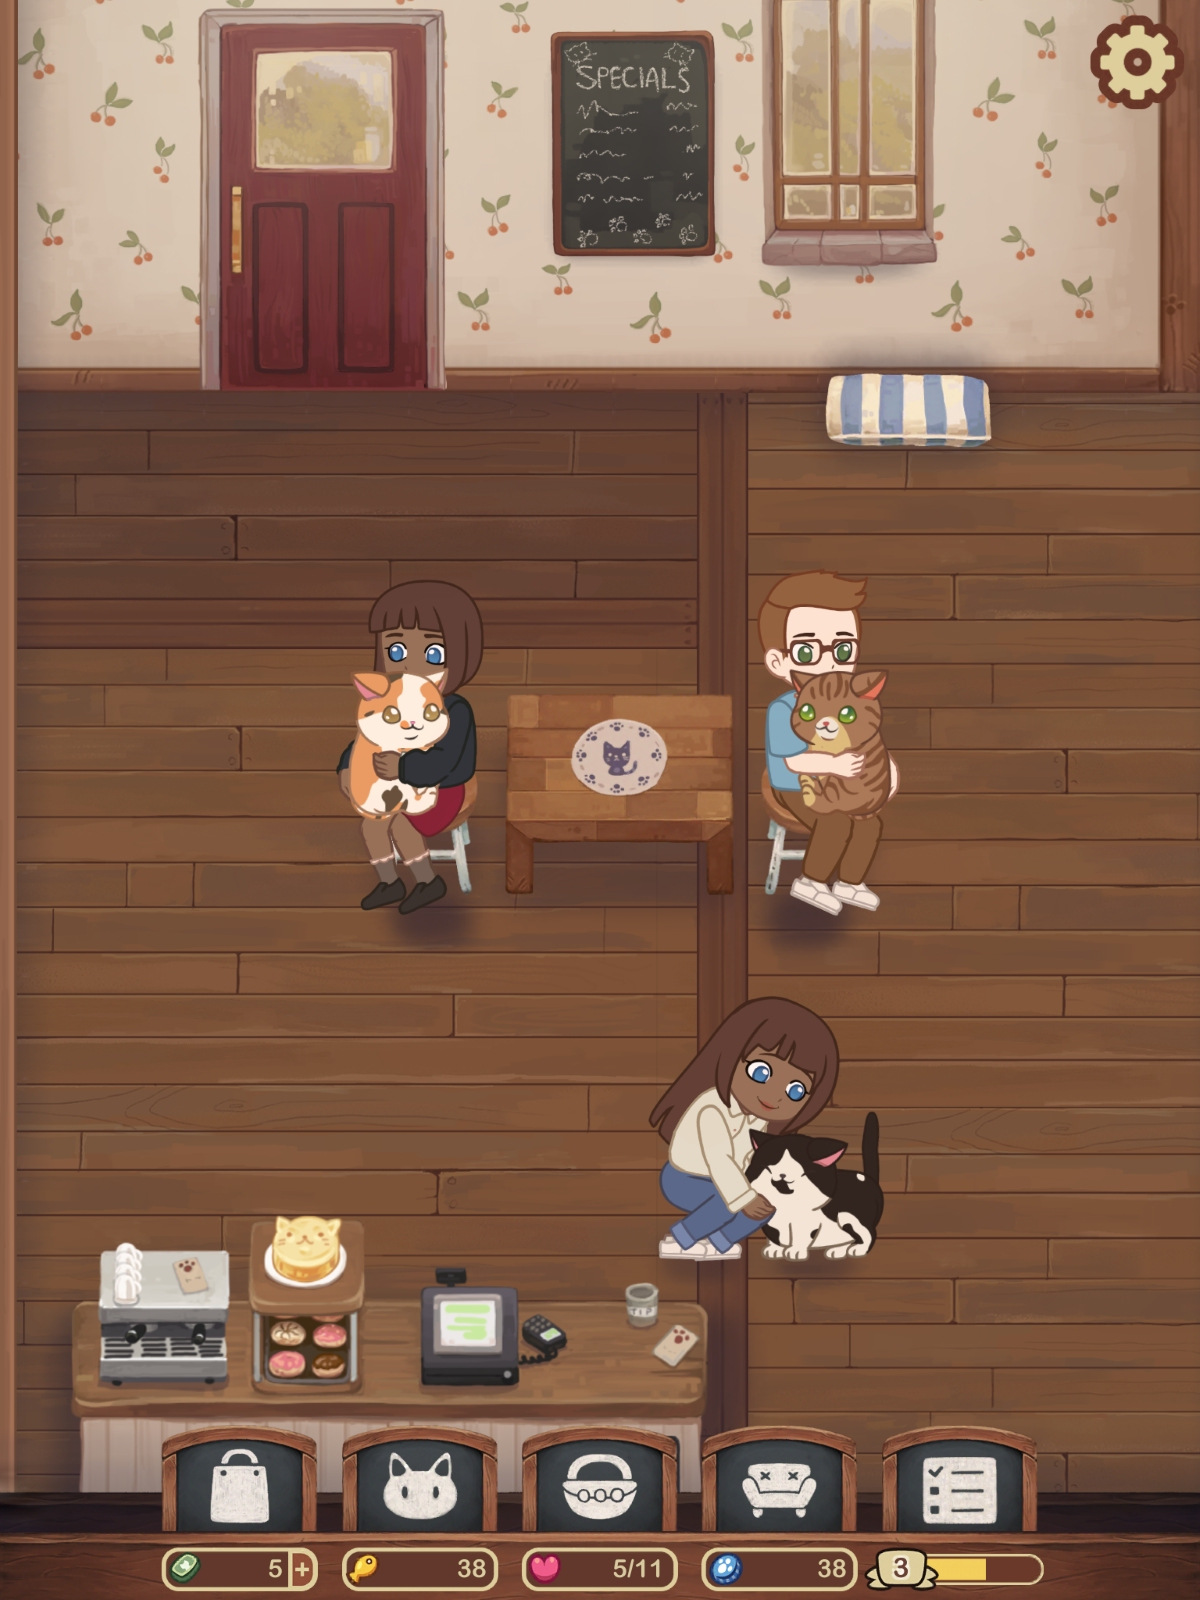 Furistas Cat Cafe review - A cute, gentle idle management game for all the family